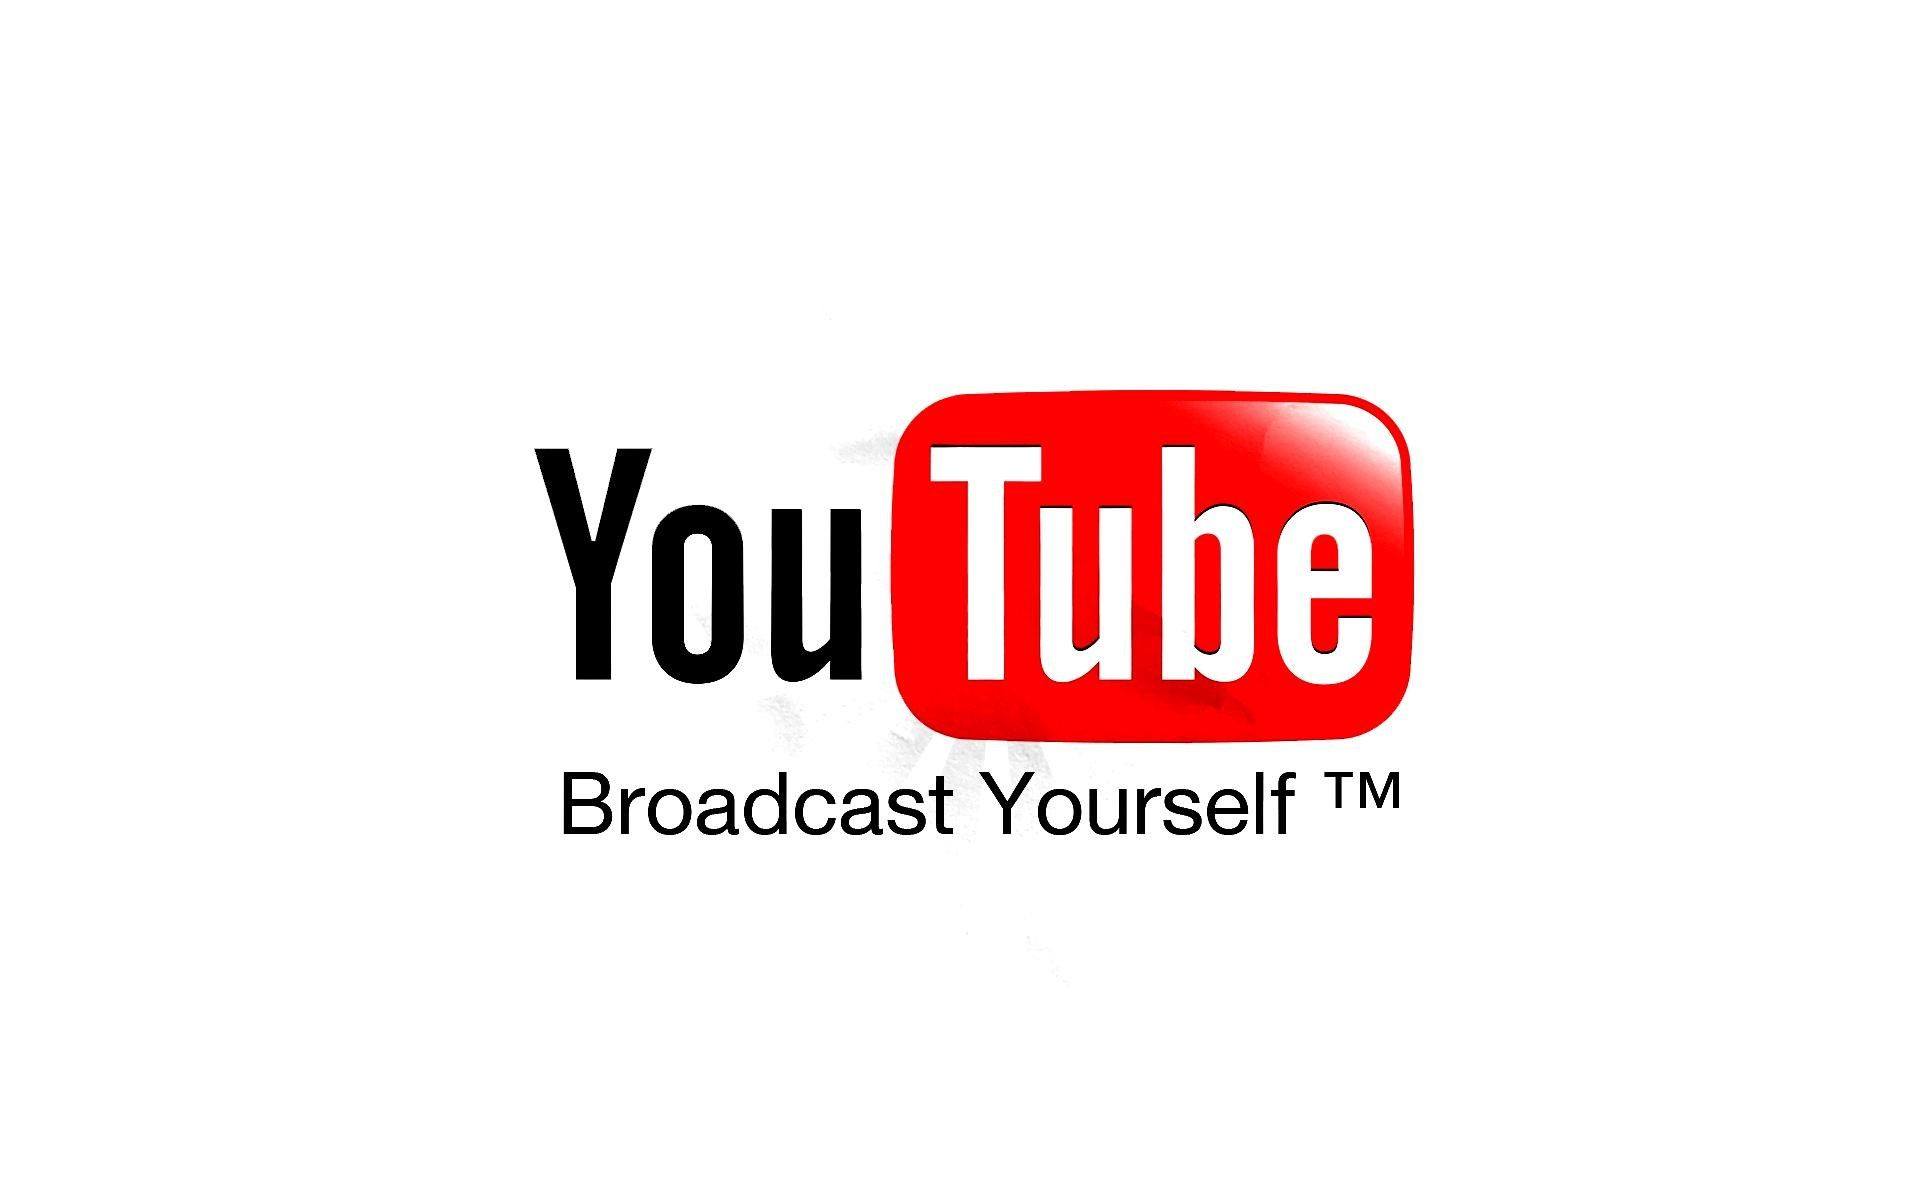 youtube logo information portal high contrast hd